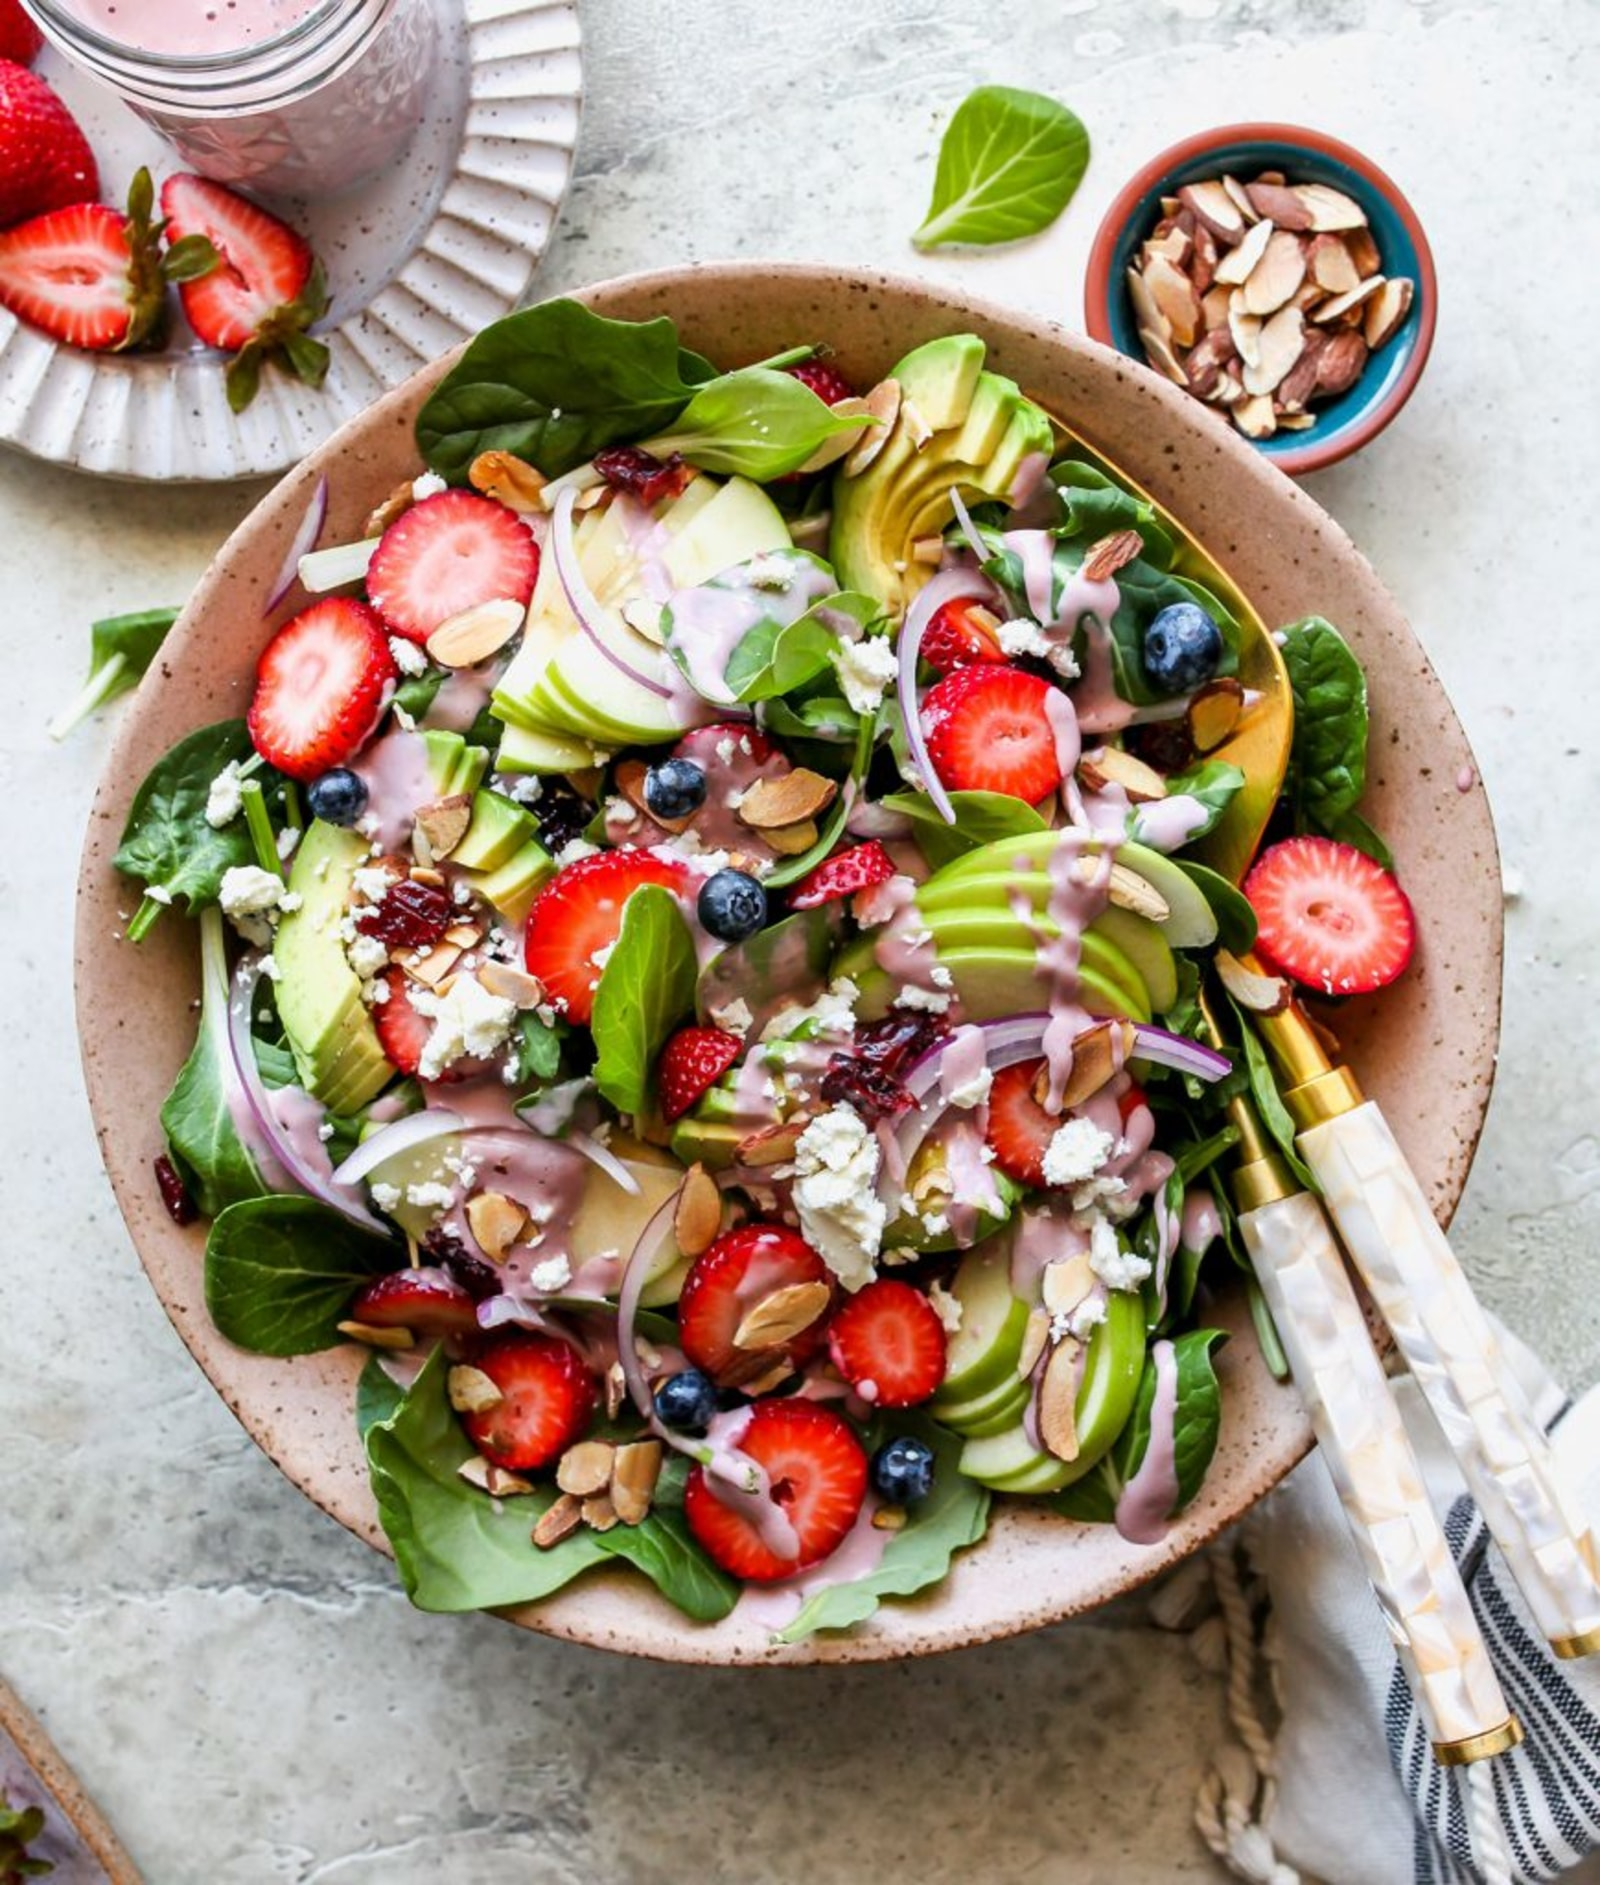 Image of Berry and Spinach Salad with Creamy Strawberry Tahini Dressing